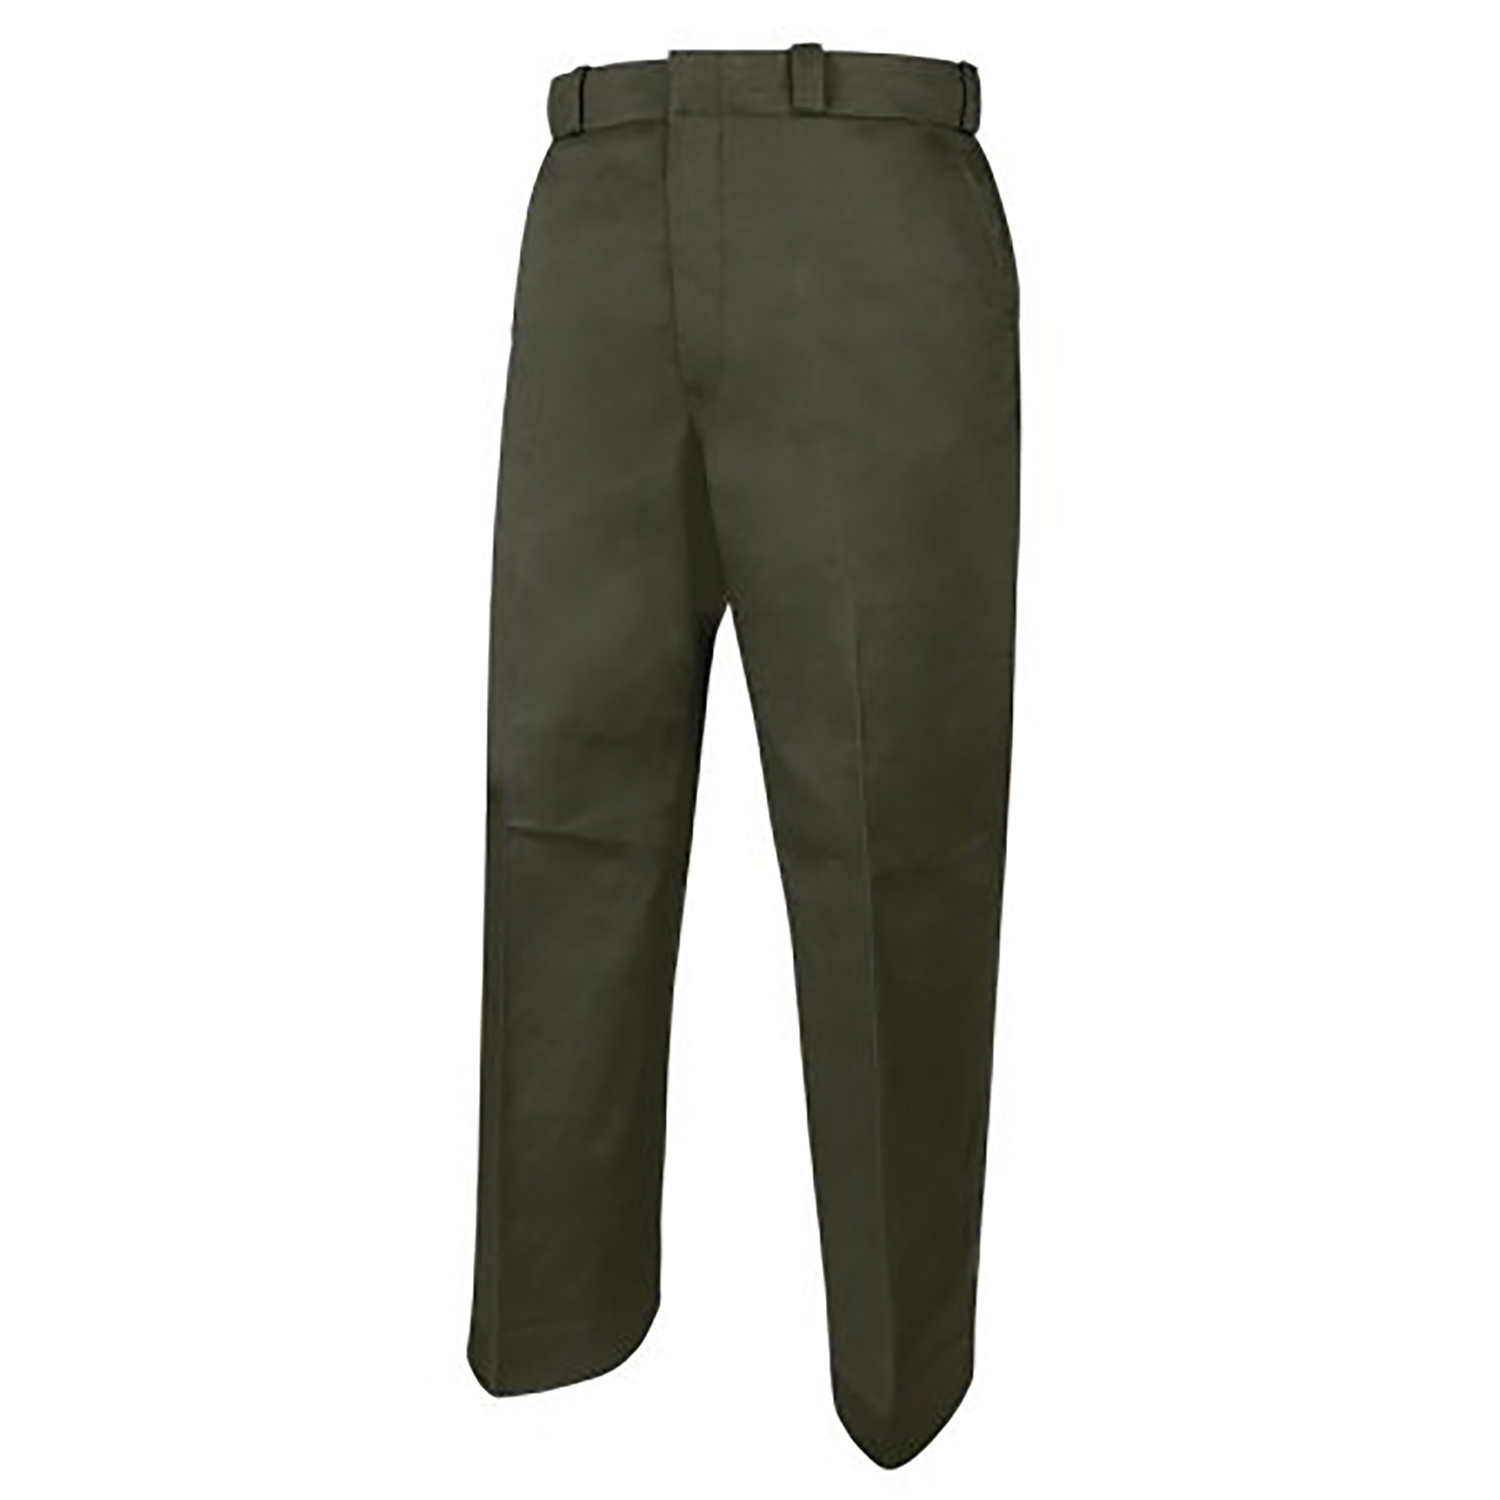 Elbeco TexTro Trousers with Gray Stripe